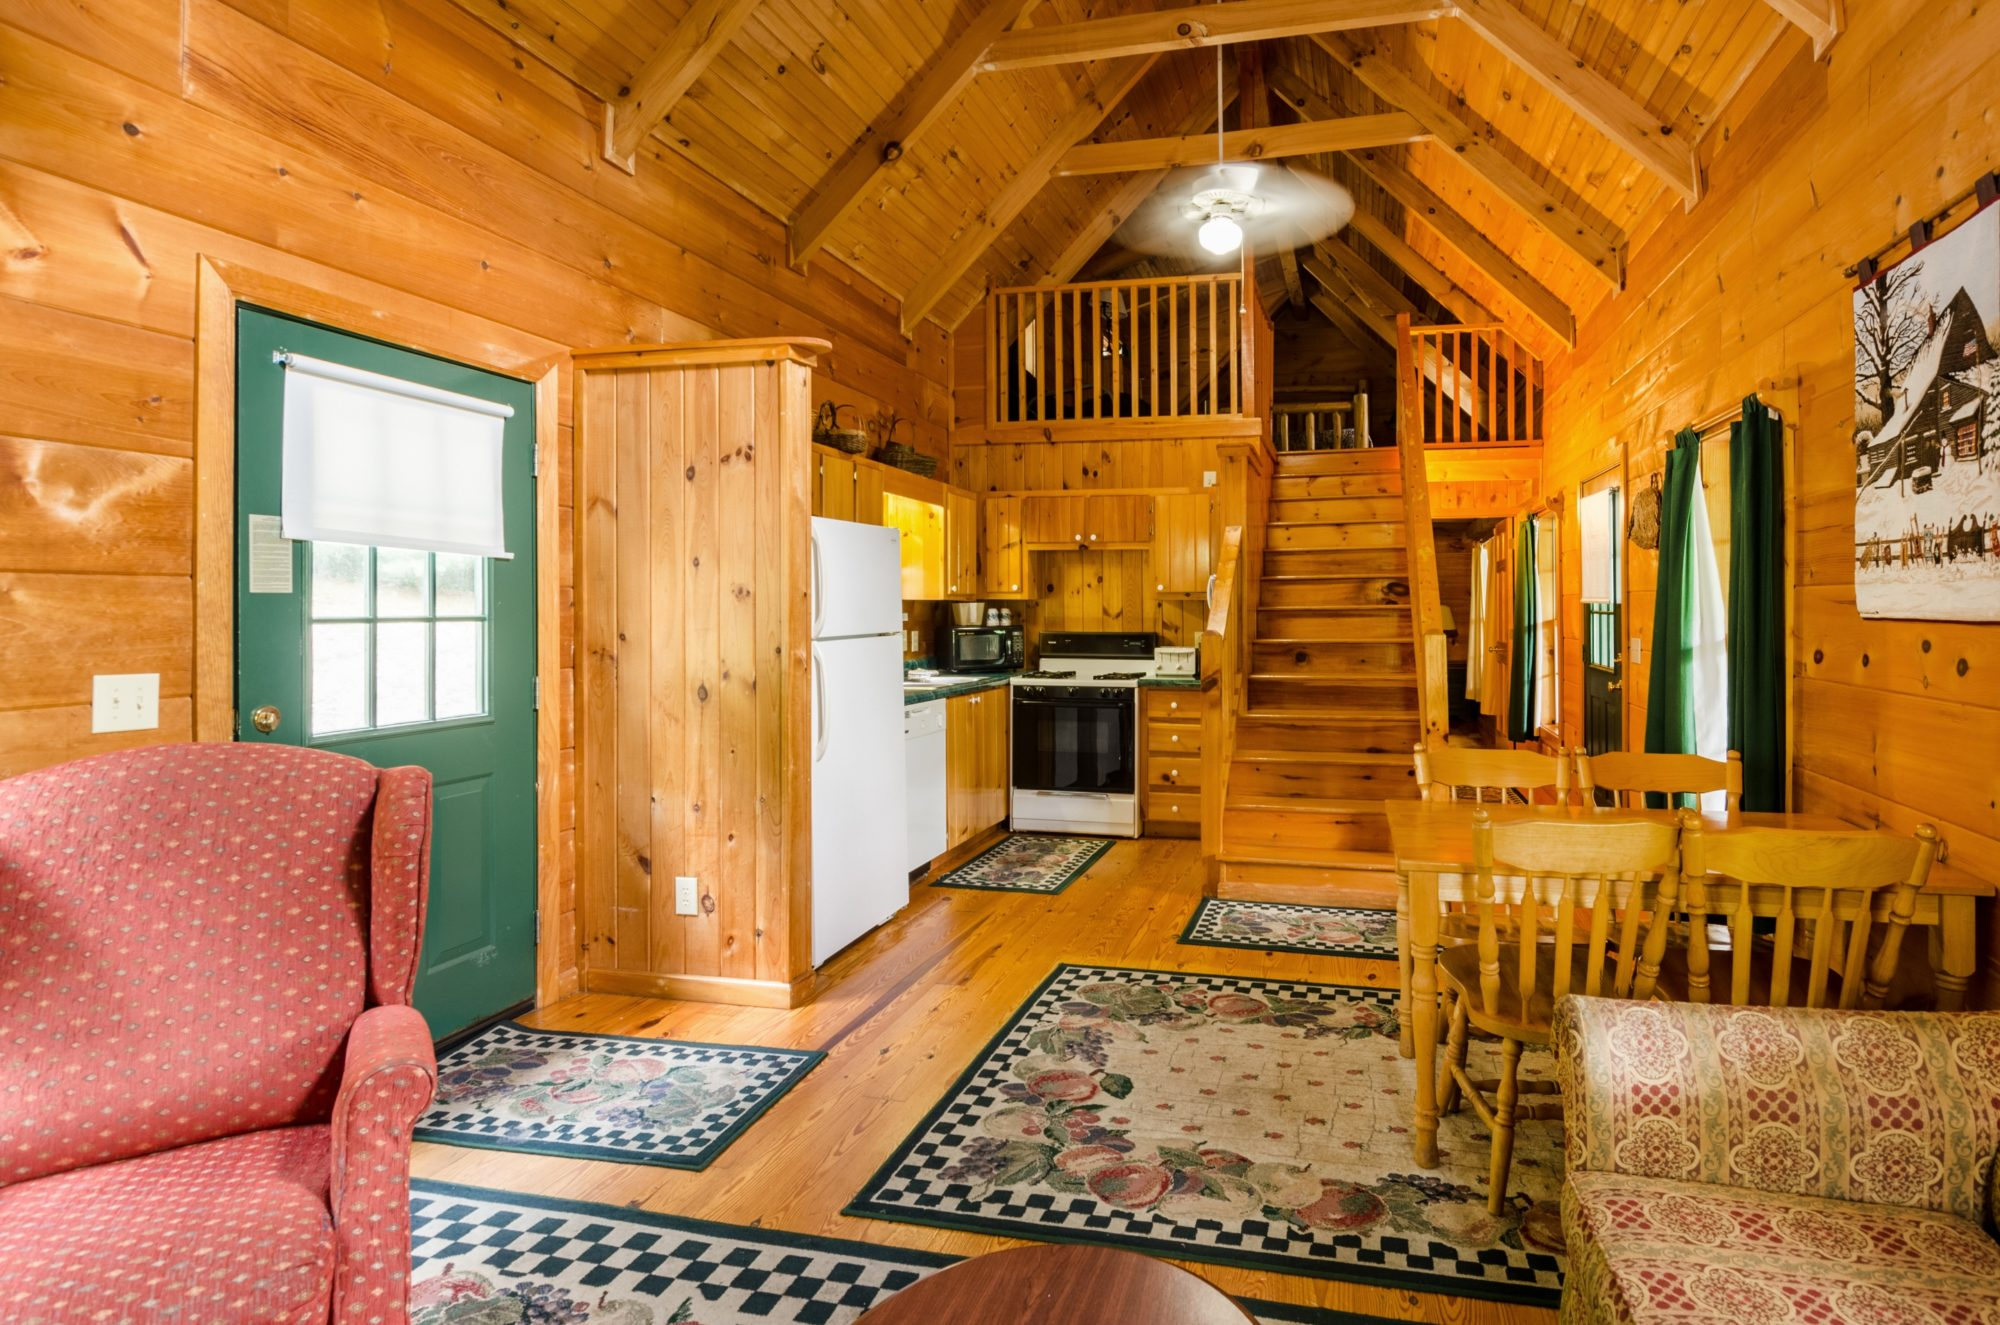 Cabin Front door, fridge, dishwasher, stove, microwave, microwave, table and chairs, sofa, wooden stairs leading to bedroom, side hallway with rear door and windows, wooden floor with rugs